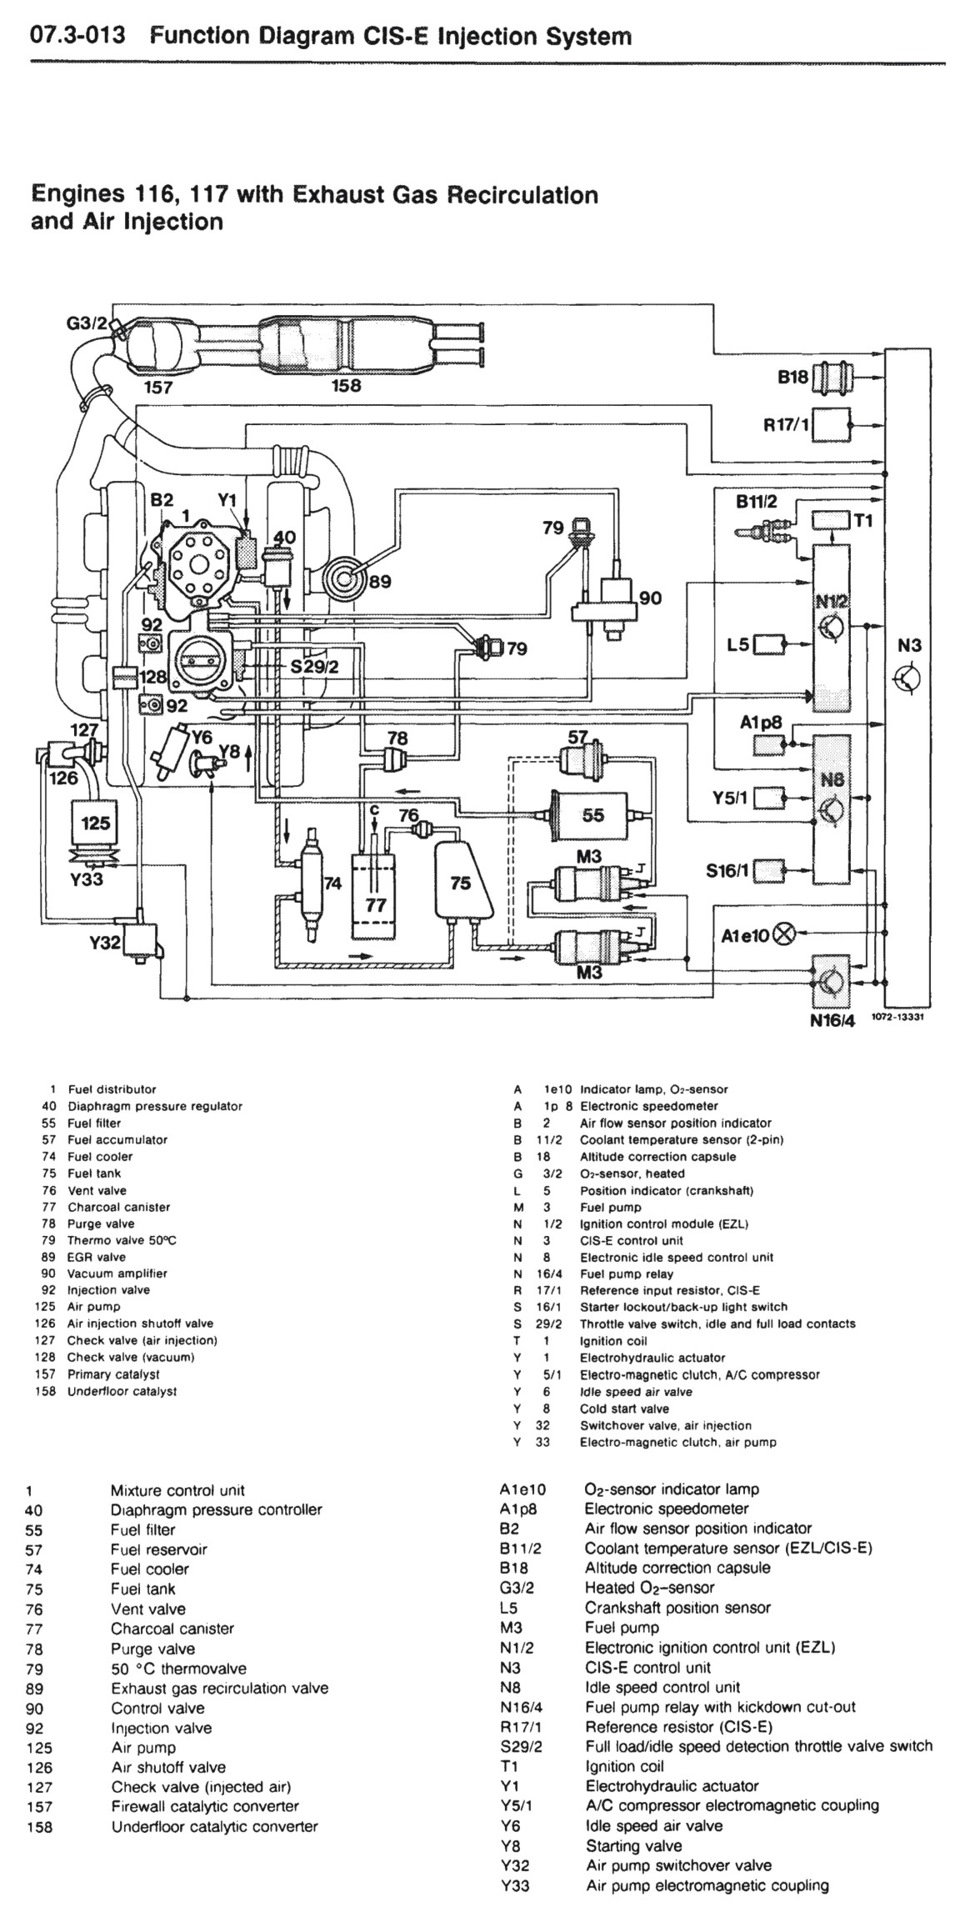 Fcs on 2000 jaguar xj8 fuse box diagram